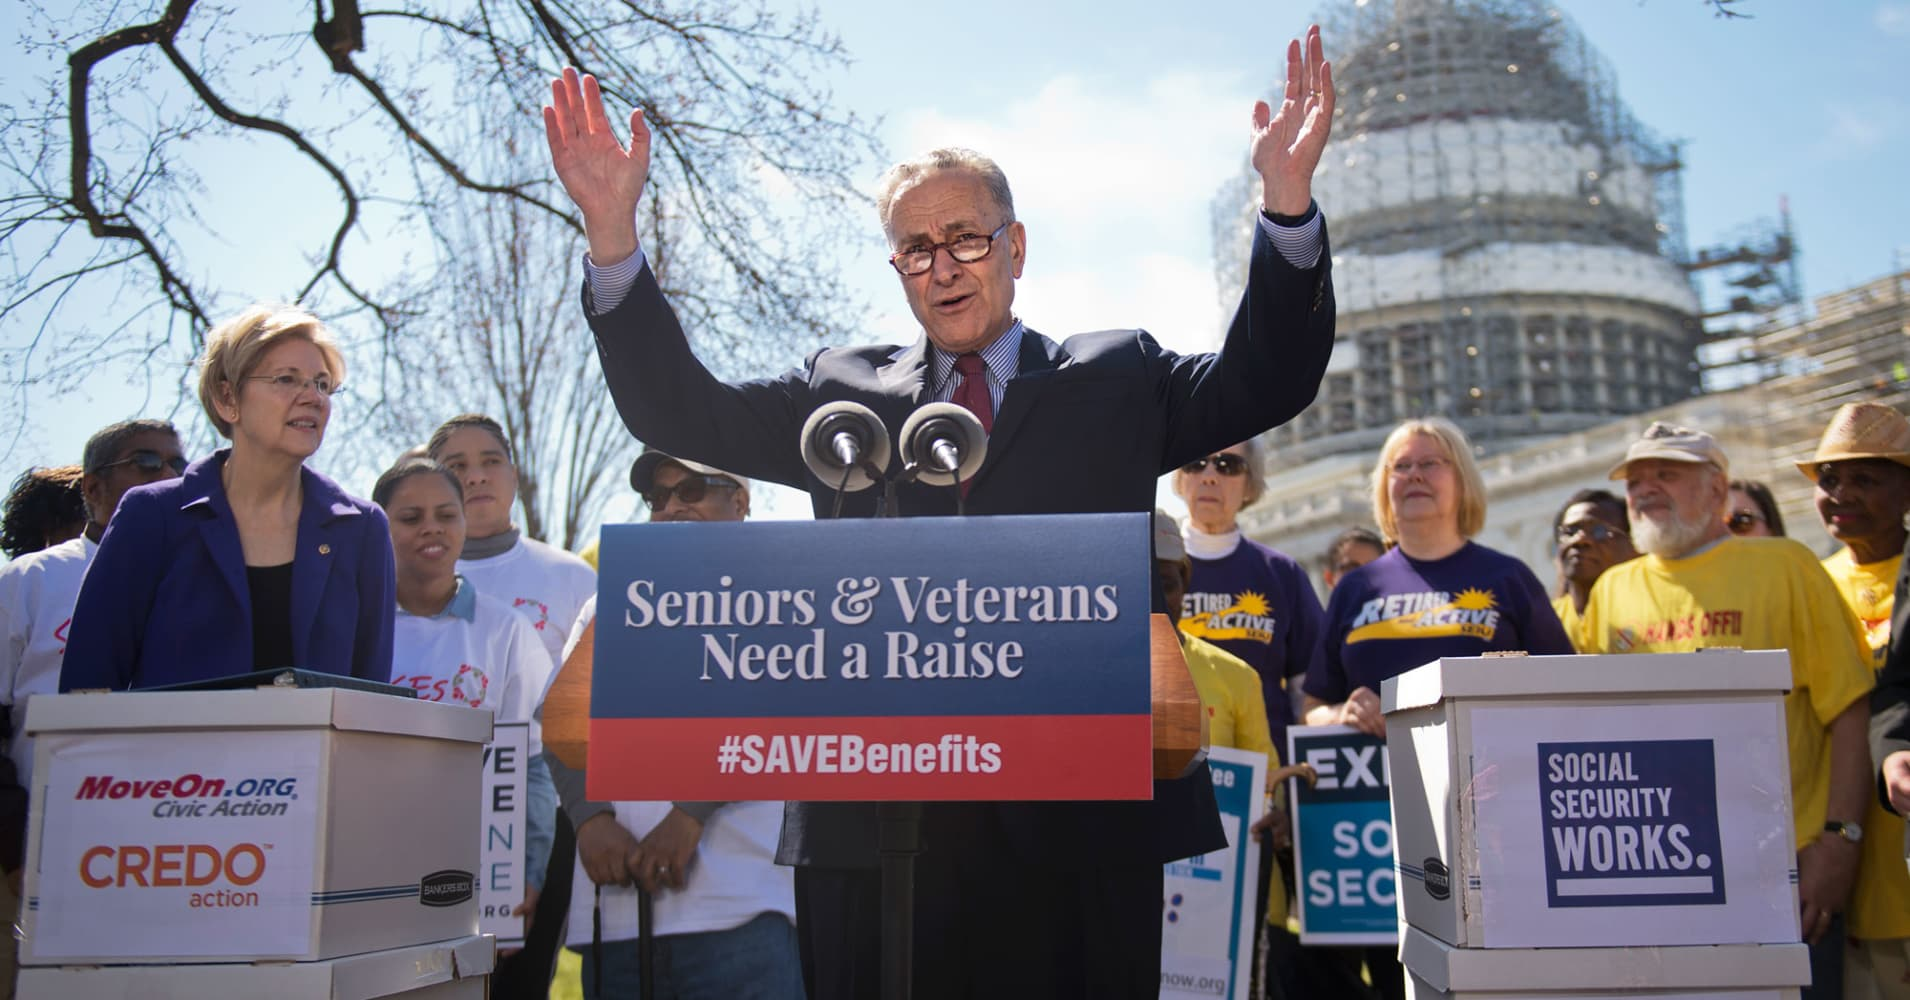 Sens. Elizabeth Warren, D-Mass., left, Charles Schumer, D-N.Y., and Tammy Baldwin, D-Wis., conduct a rally on the east lawn of the Capitol to urge Mitch McConnell, R-Ky., to hold a vote on the 'Seniors and Veterans Emergency Benefits Act,' March 9, 2016. The legislation would provide a one time payment to seniors, veterans and other SSI recipients who will not get a cost-of-living adjustment this year.